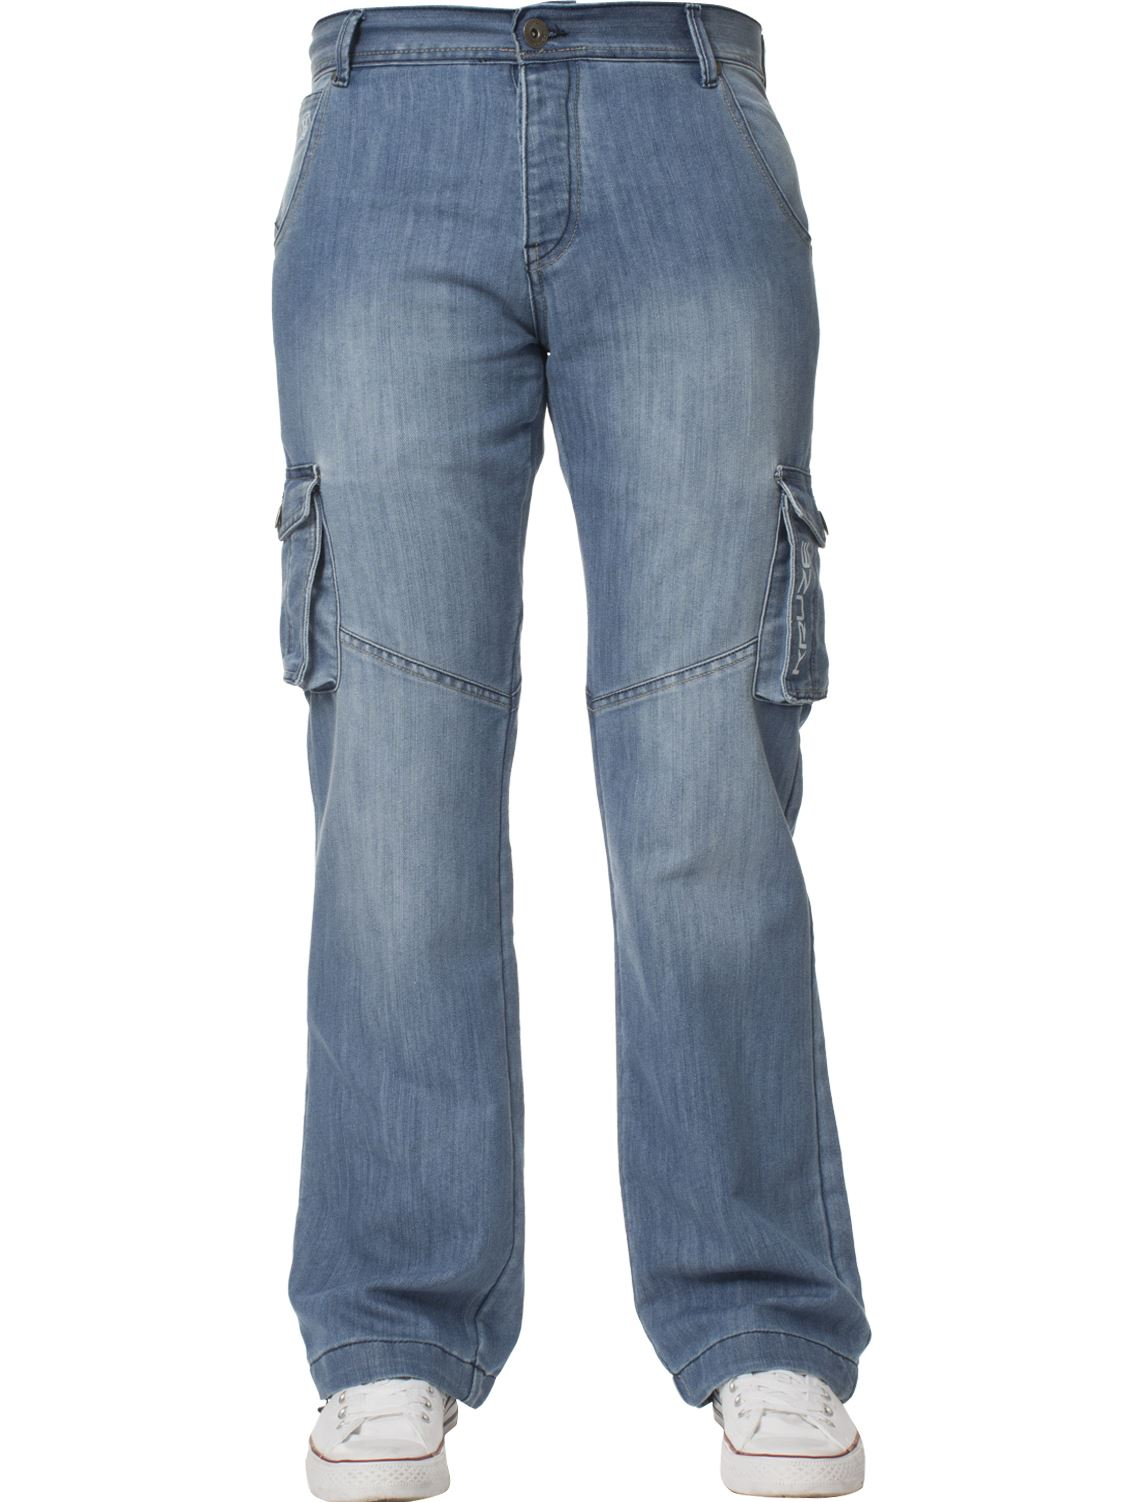 Mens-Cargo-Jeans-Combat-Trousers-Heavy-Duty-Work-Casual-Big-Tall-Denim-Pants thumbnail 81